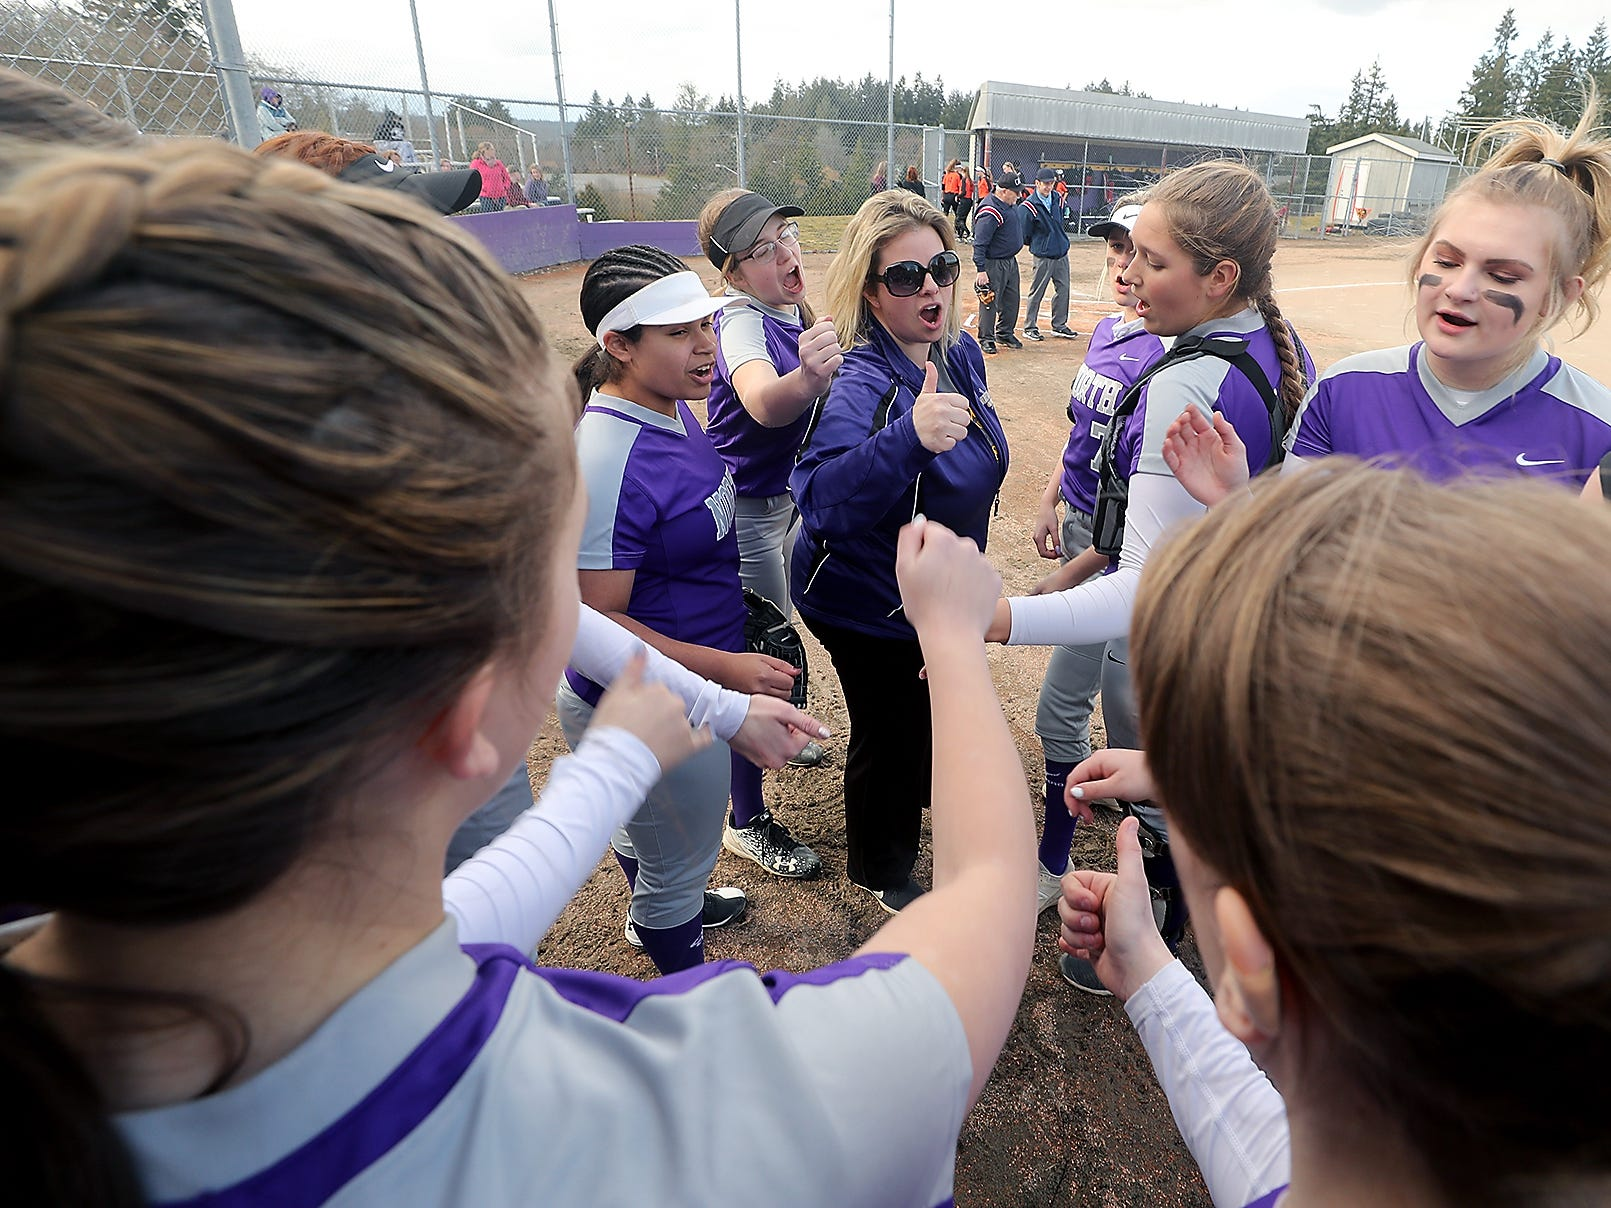 North Kitsap coach Jamie Smaaladen (center) joins her team in a cheer prior to the start of their game against Central Kitsap in Poulsbo on Wednesday, March 13, 2019.